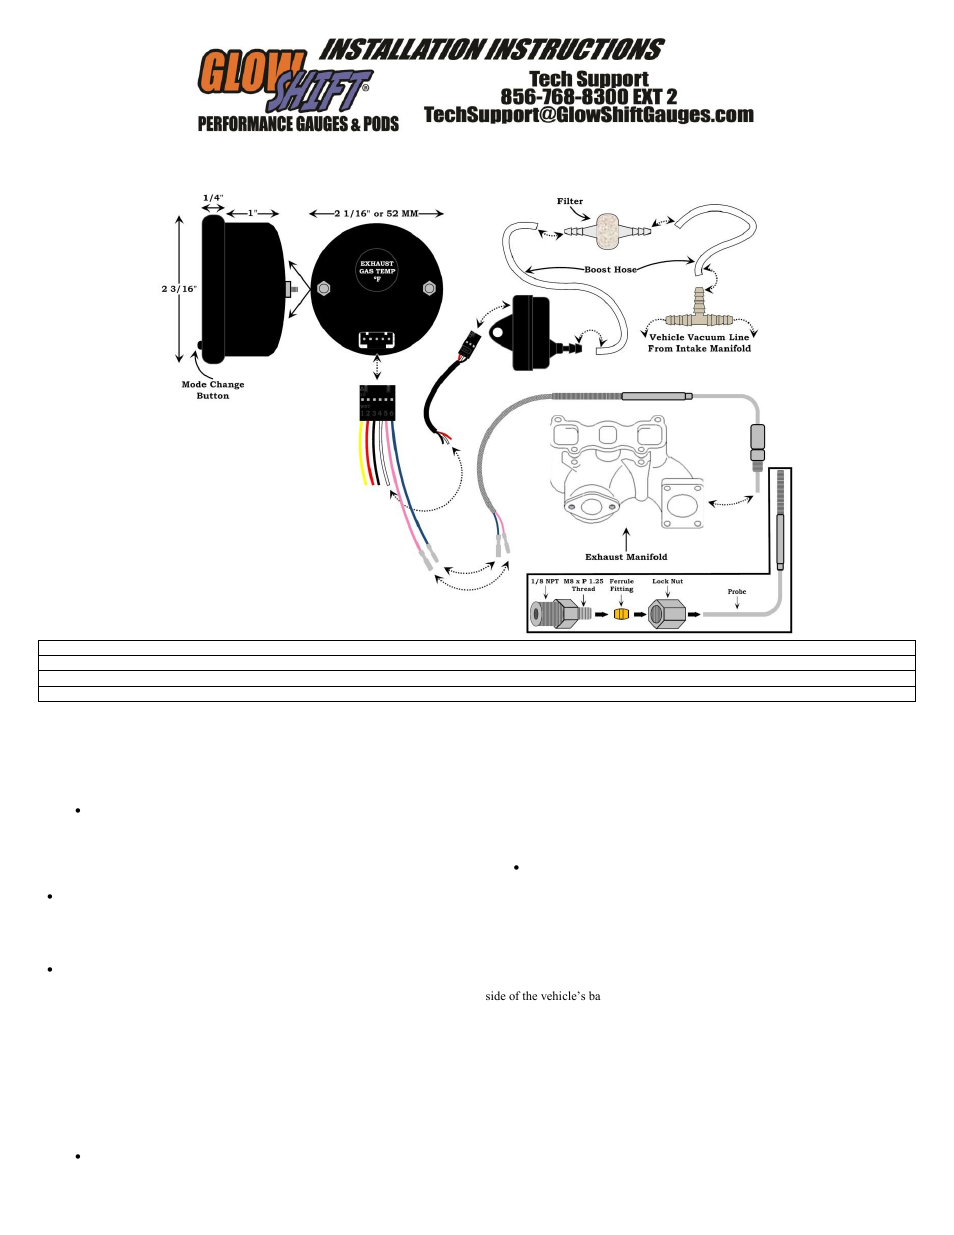 Manual Brake Gauge : Glowshift gauges wiring diagram images